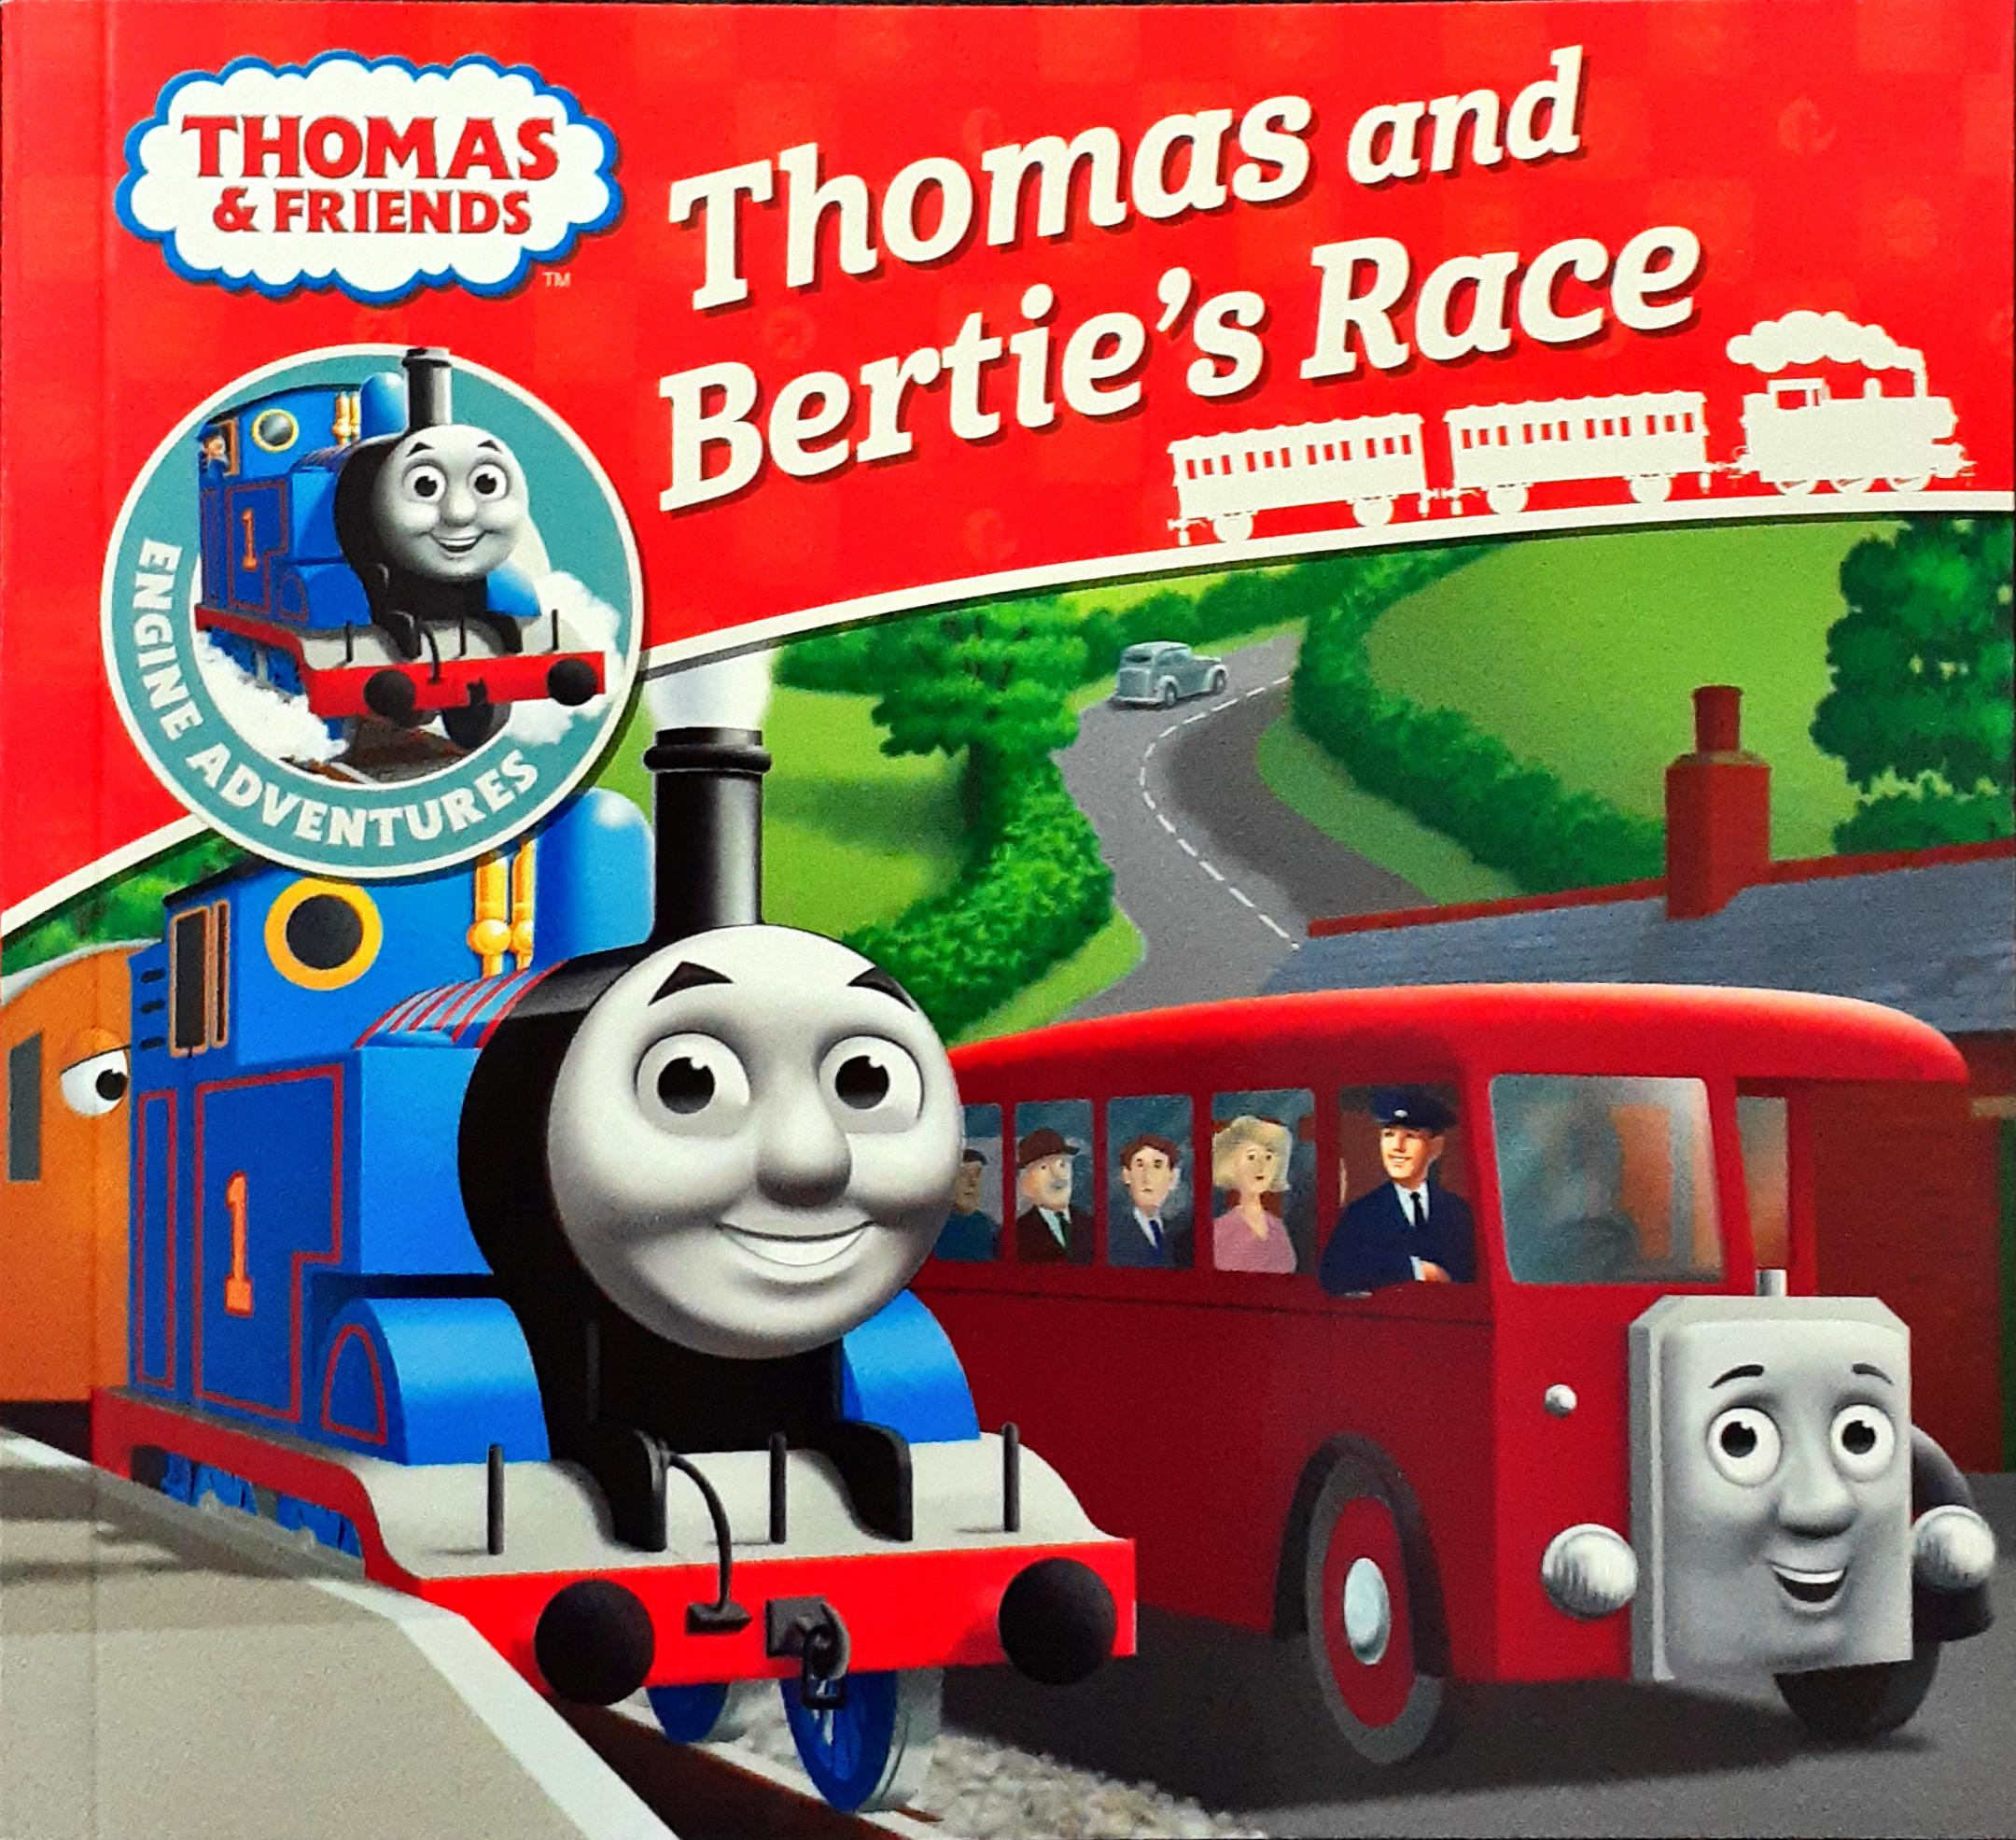 File:ThomasandBertie'sRace(EngineAdventures).png